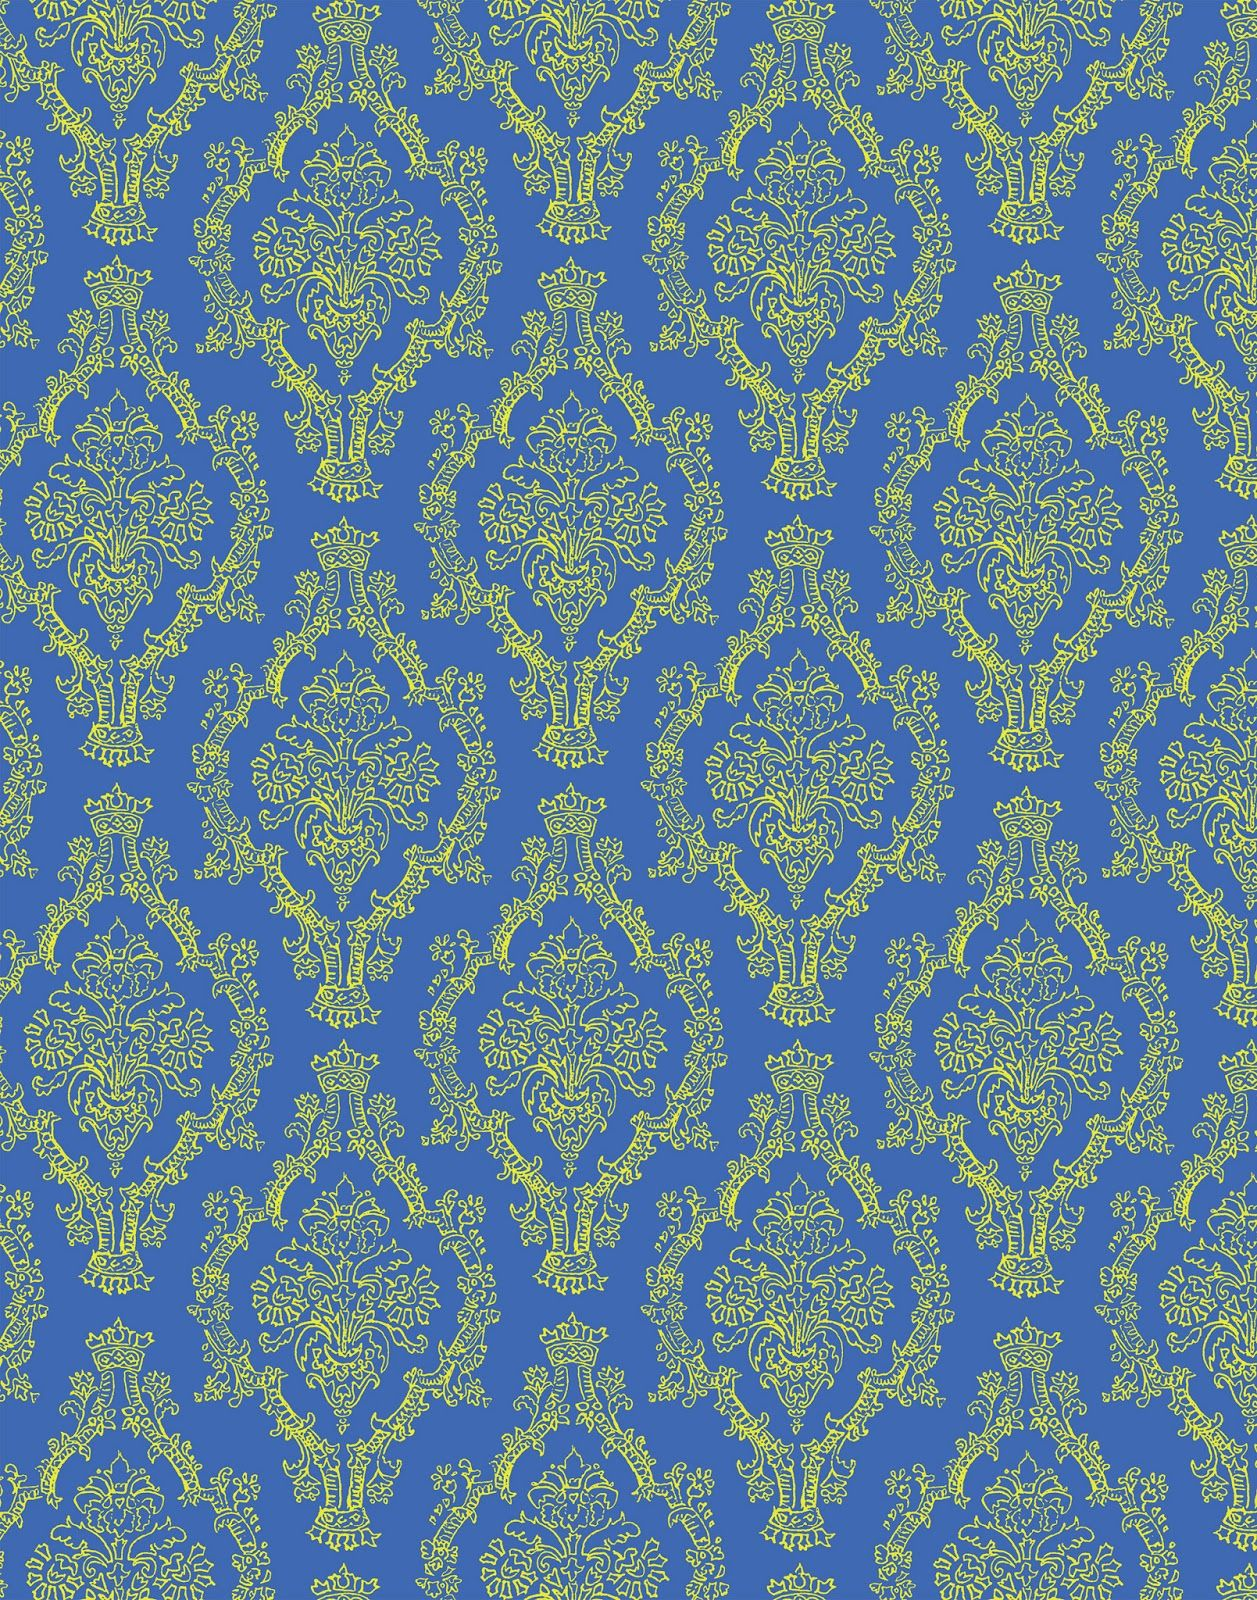 Royal Blue And Gold Wallpaper Blue and gold wallpaper